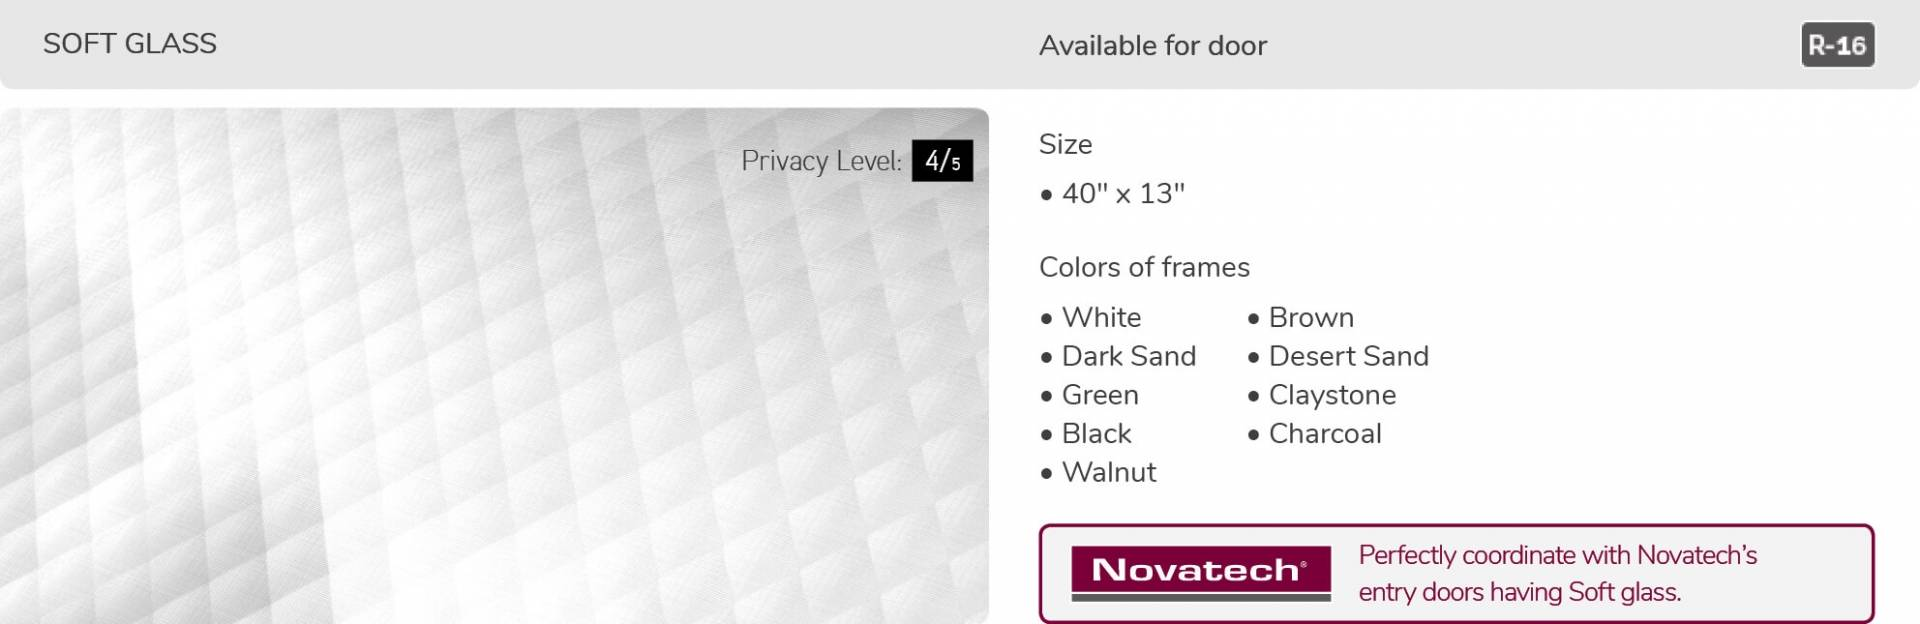 Soft glass, 40' x 13', available for door R-16